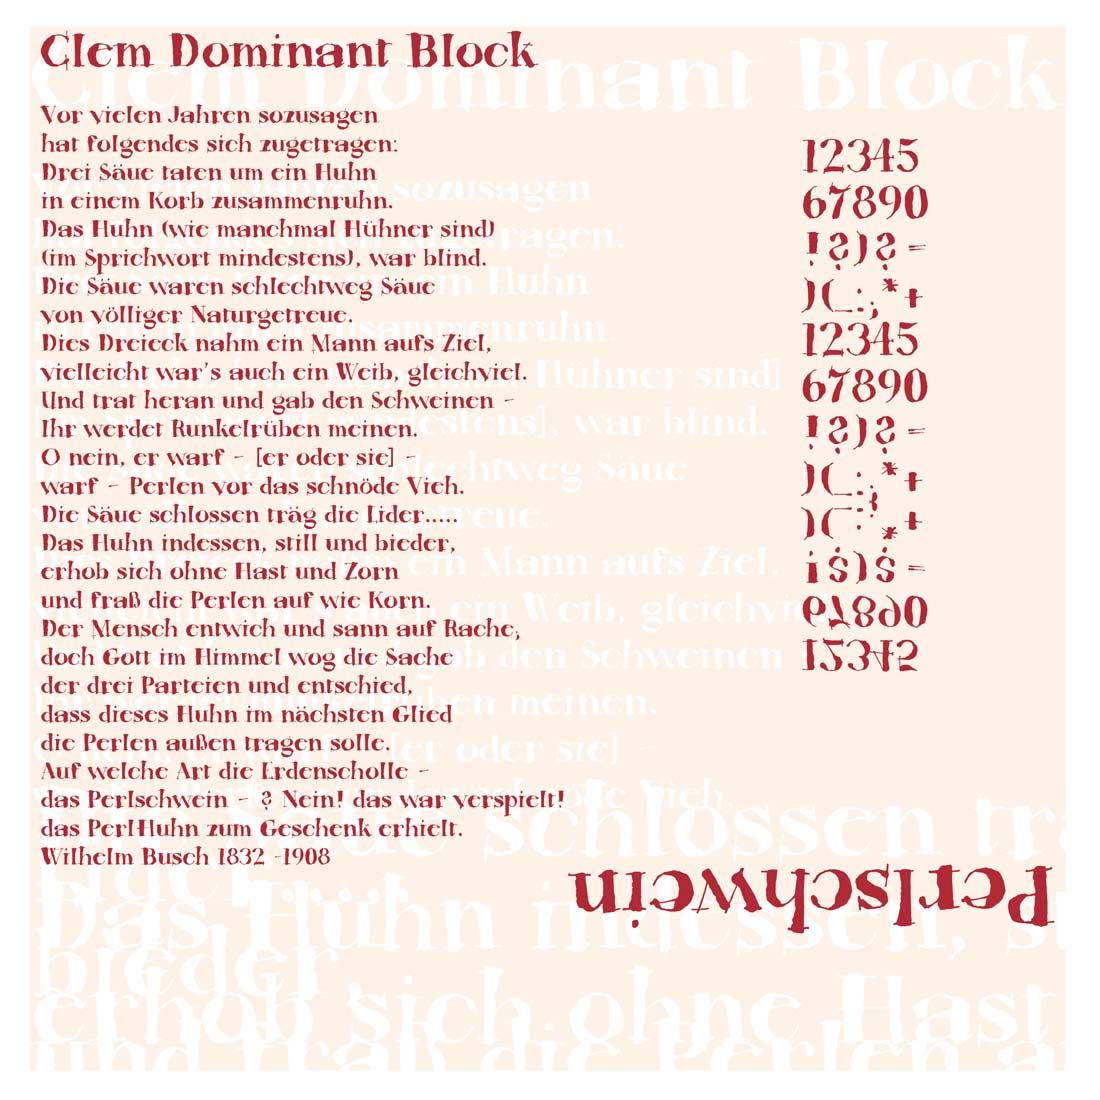 clemdominant